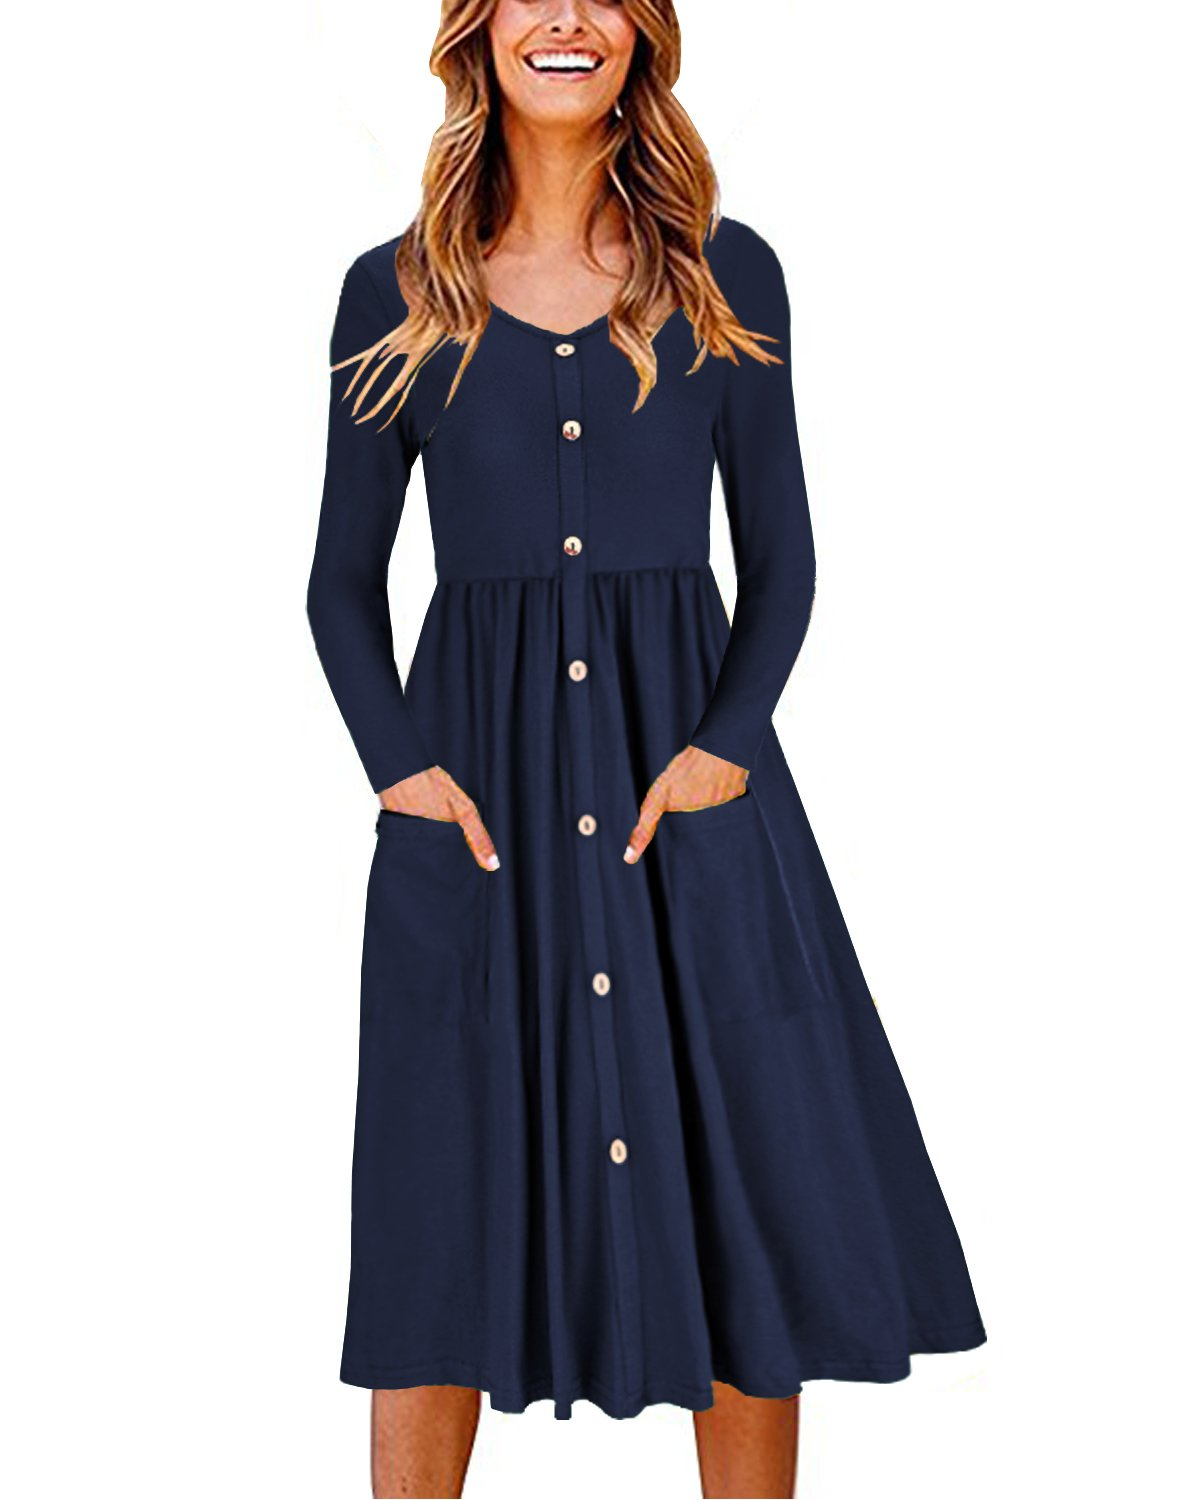 OUGES Women's Long Sleeve V Neck Button Down Midi Skater Dress with Pockets(Navy,S) by OUGES